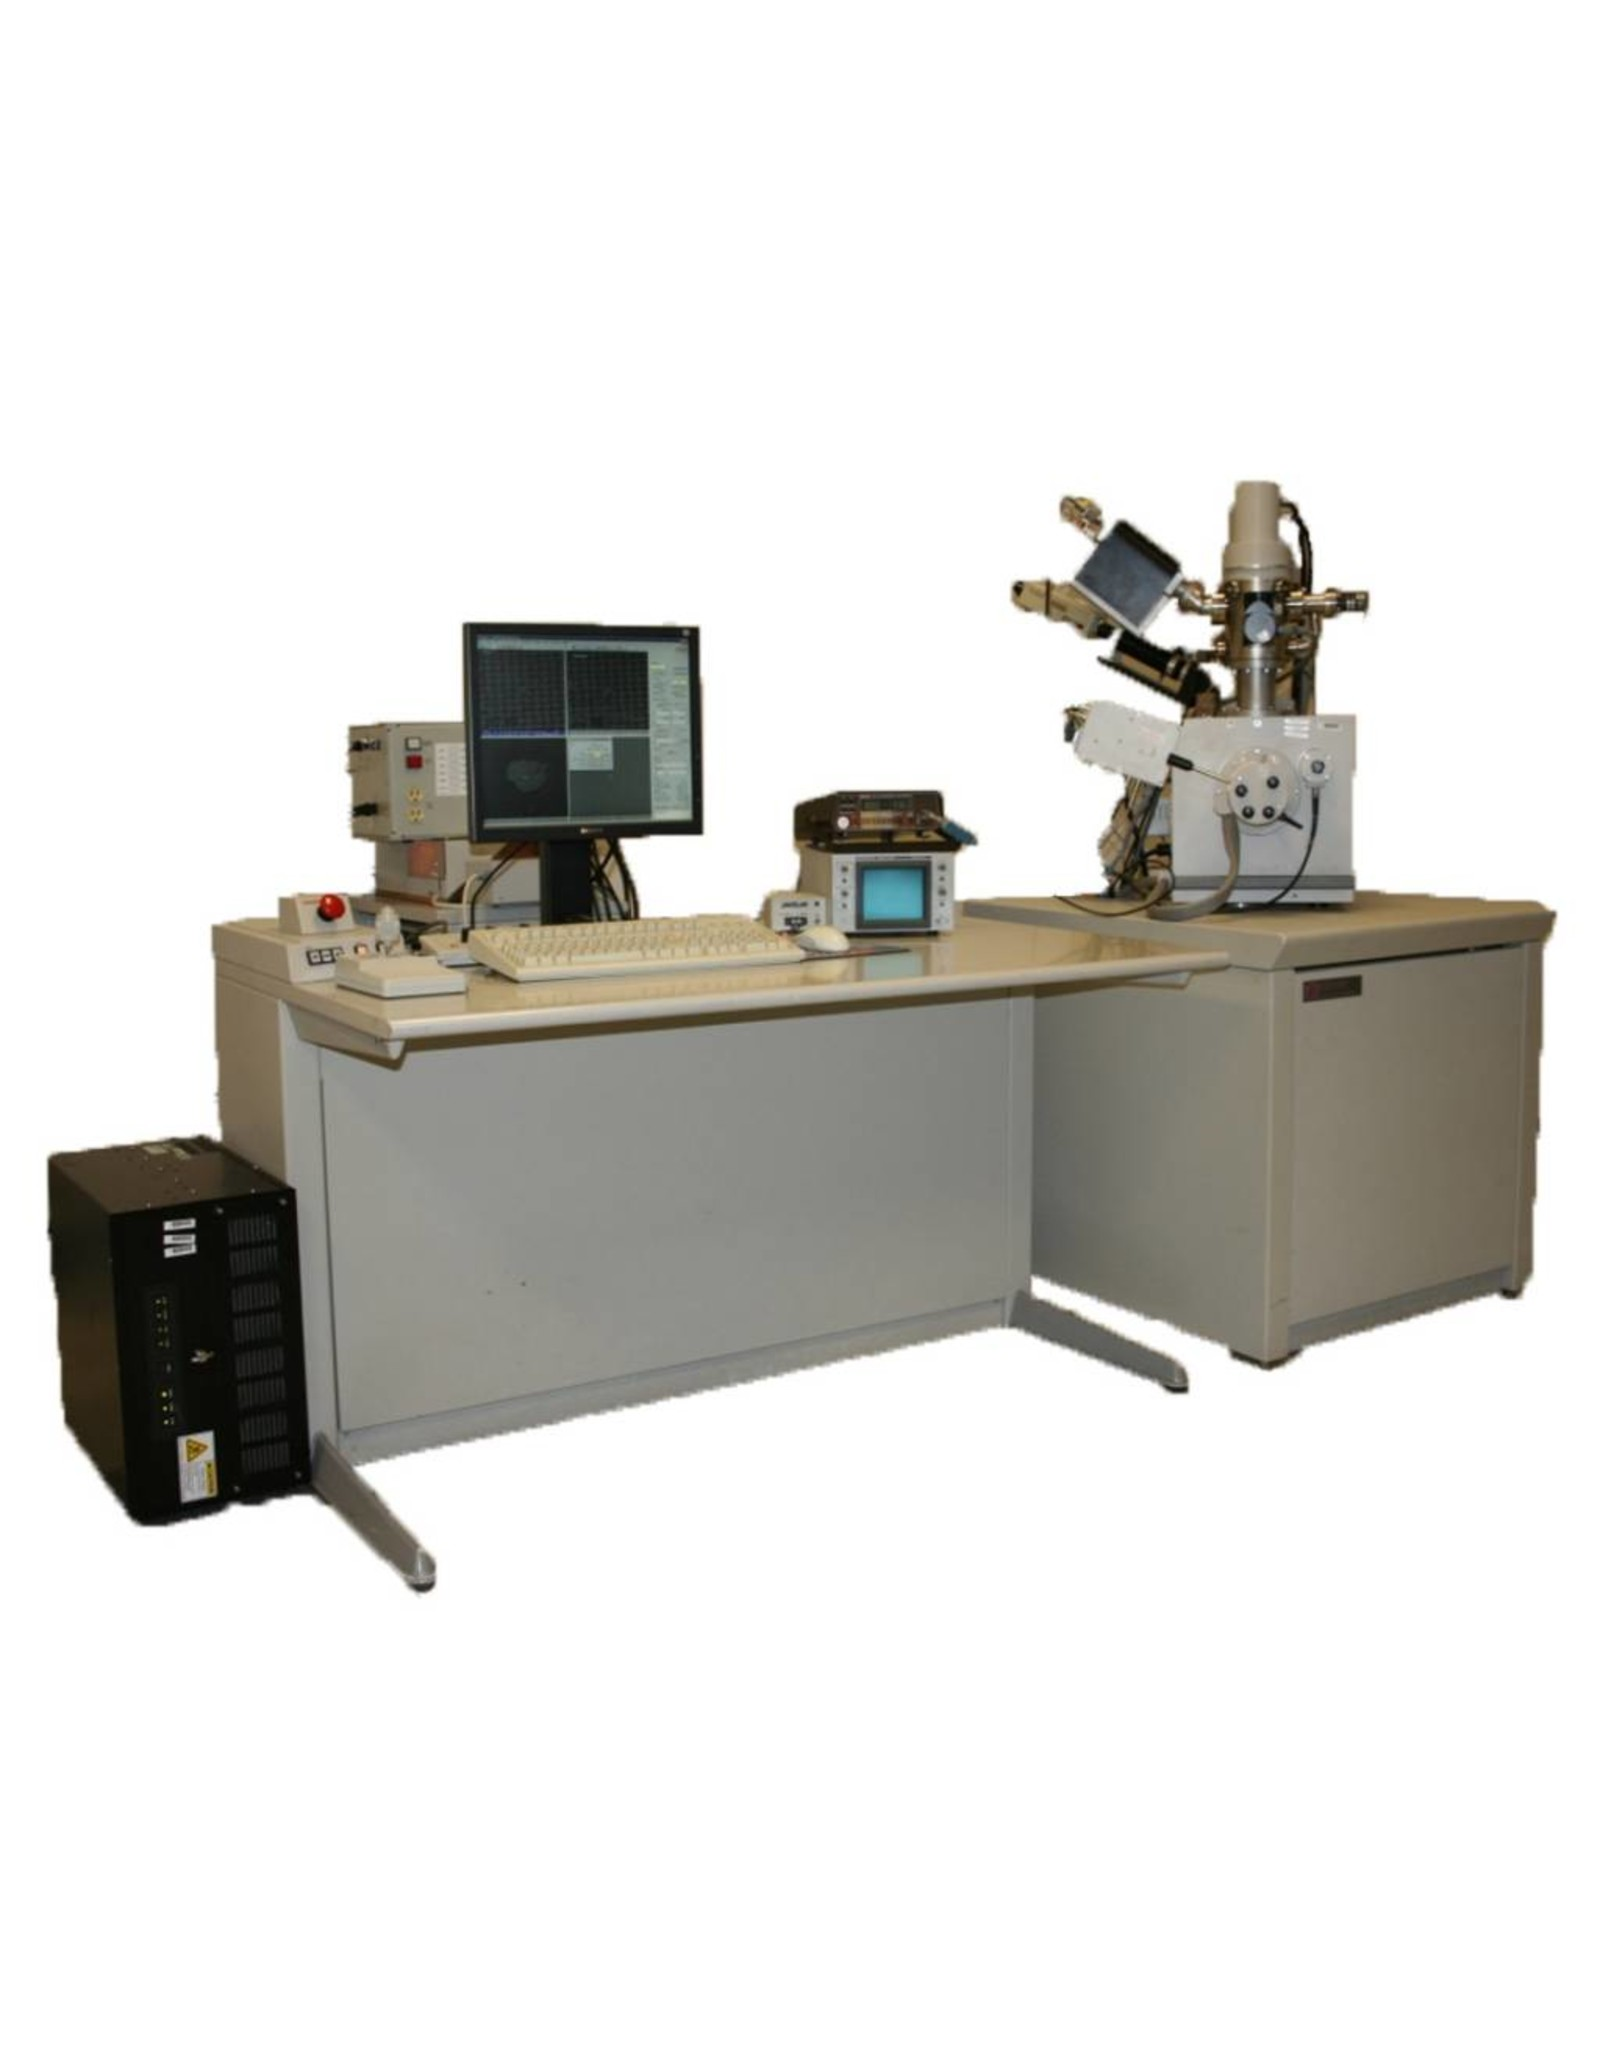 FEI FIB200 Focused Ion Beam System